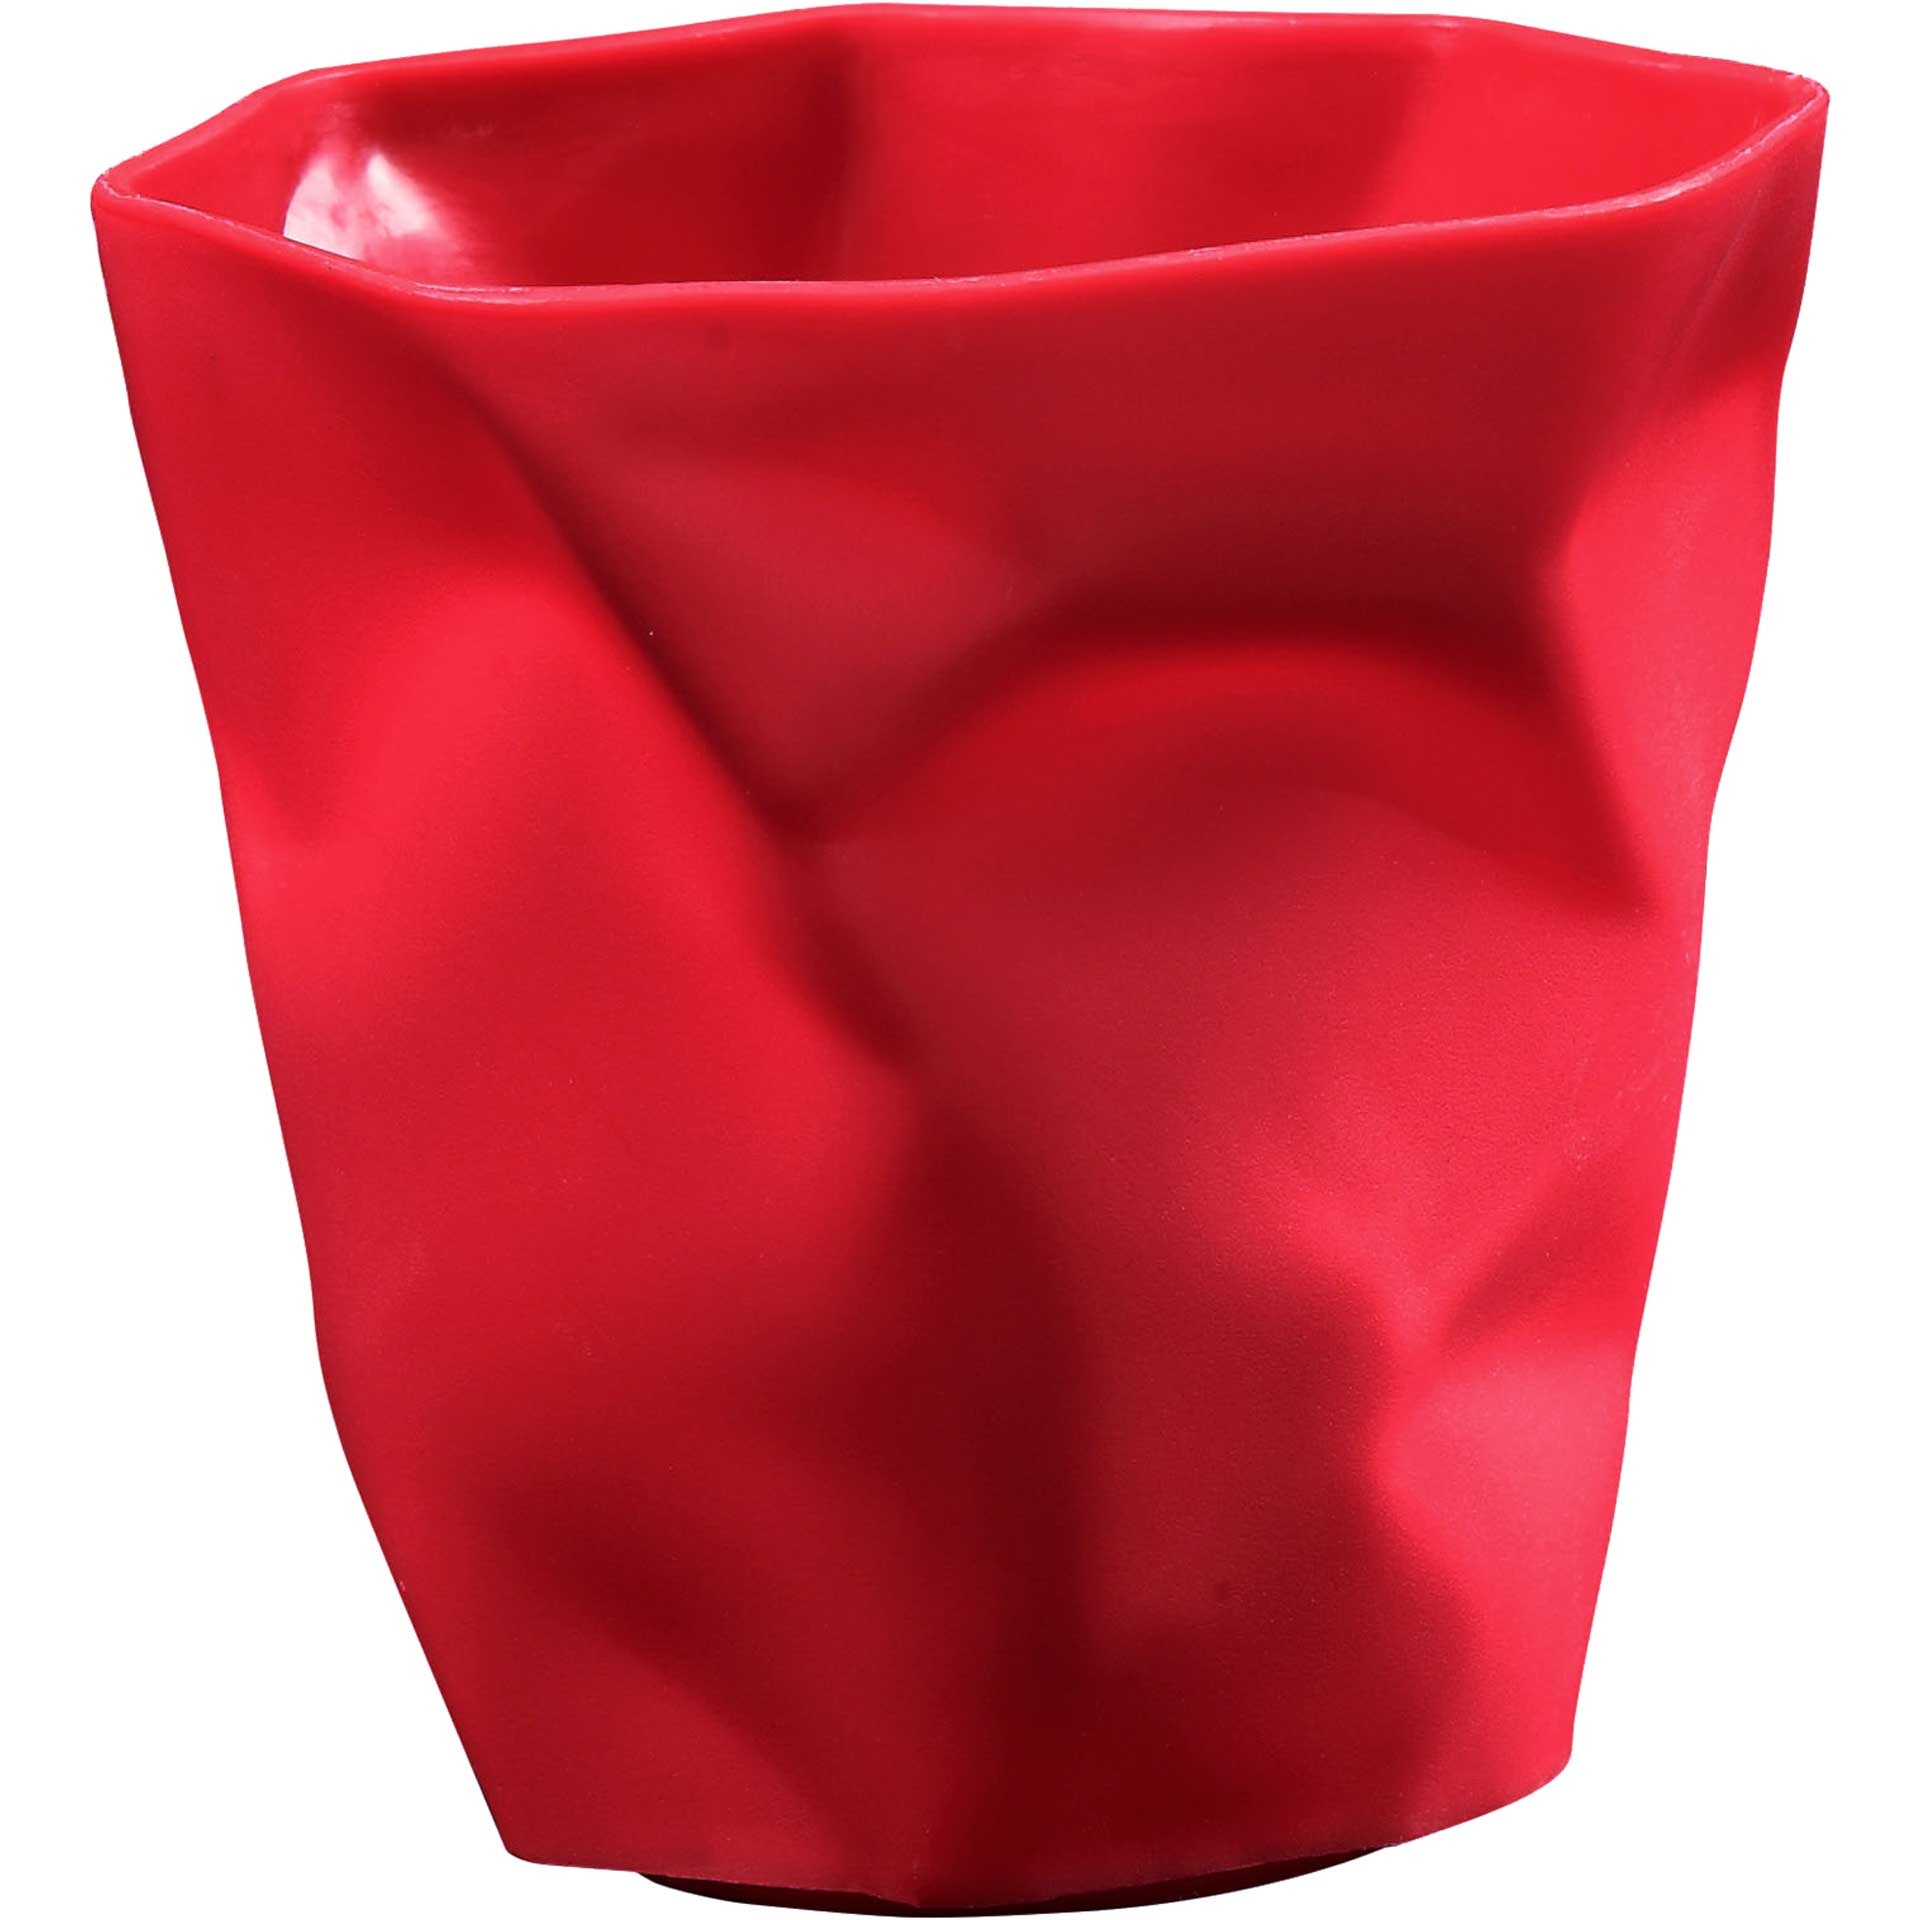 Lakh Pencil Holder Red